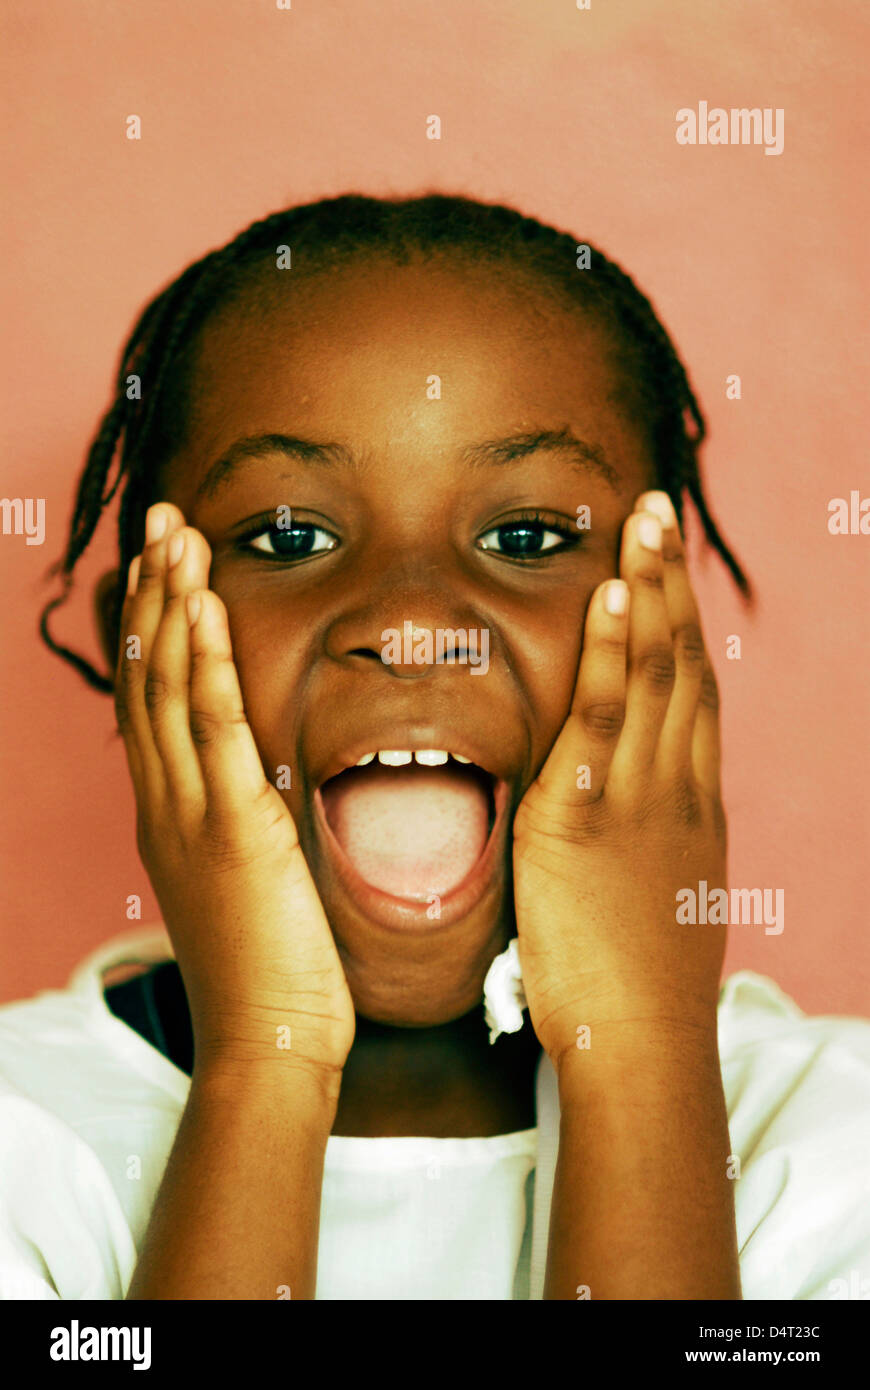 Africa, Angola, Luanda, portrait of a little African girl with her mouth open standing in front of a wall - Stock Image